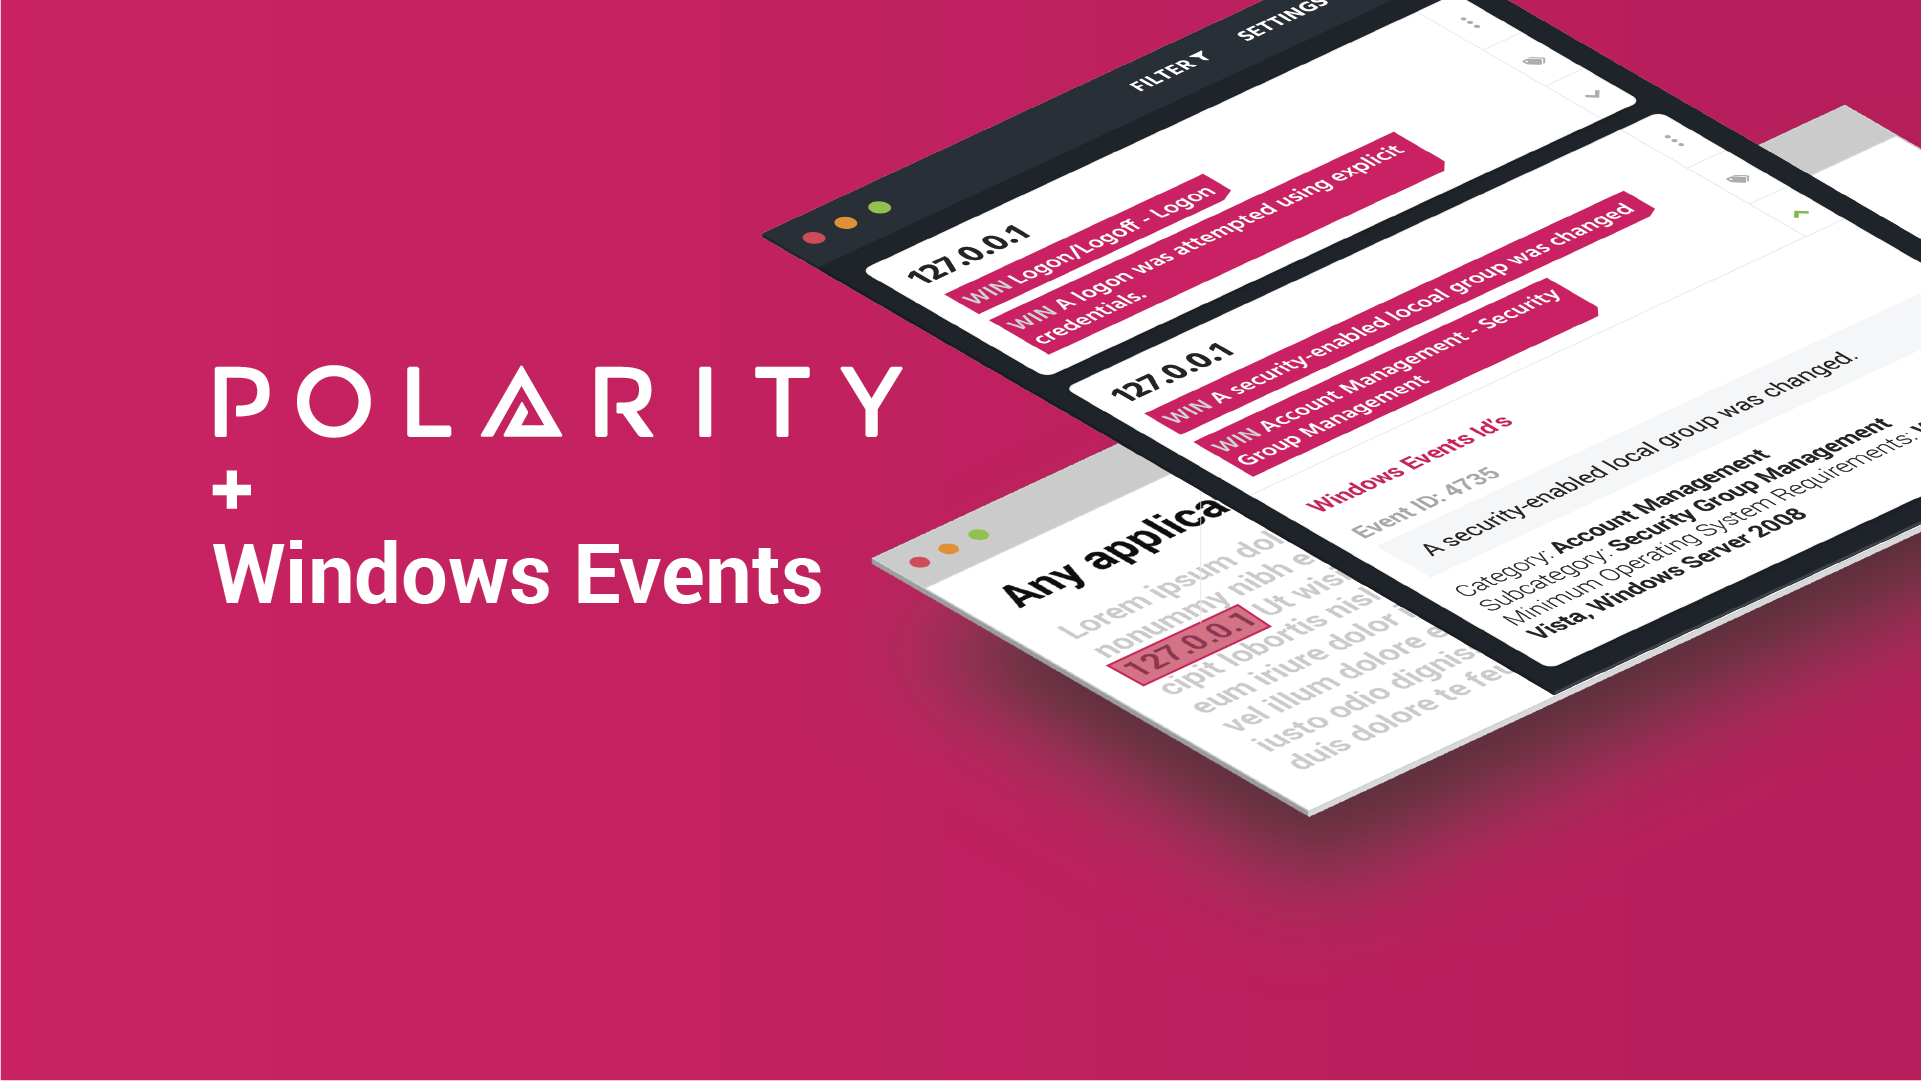 Seamlessly Analyze Windows Events with Polarity cover image